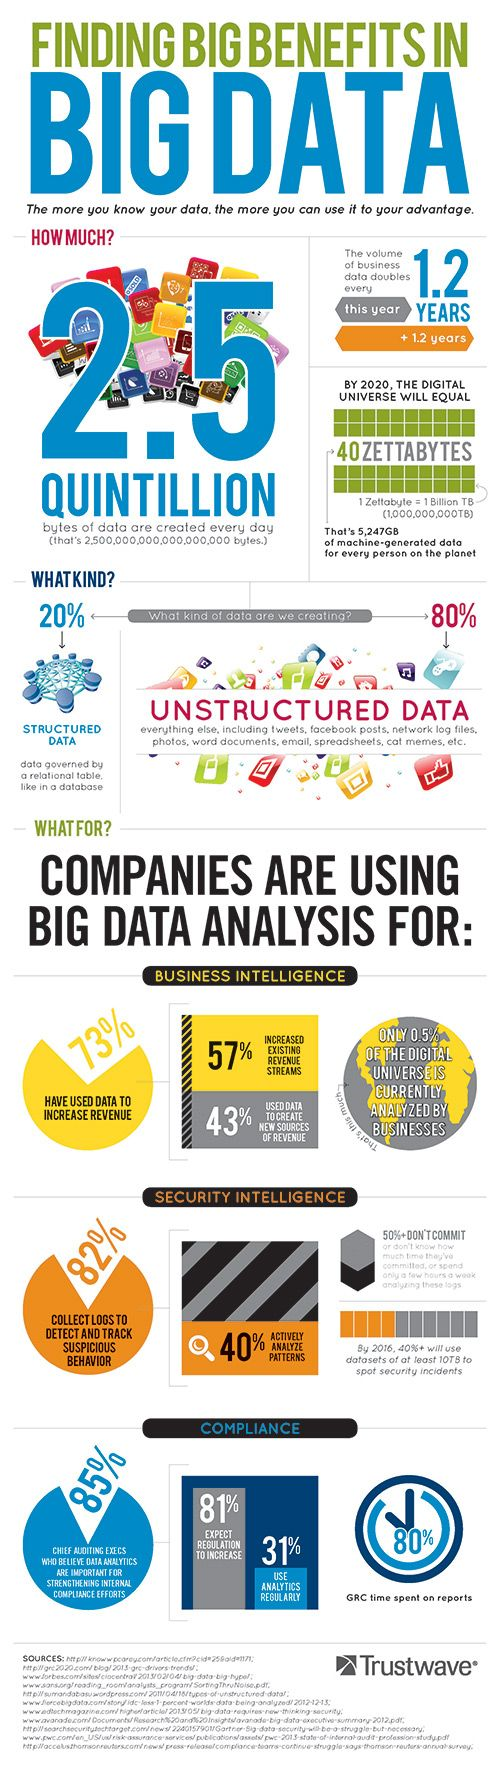 Socially Unforgettable offers workshops to teach you how to find Big Benefits in Big Data #Infographic #socialmedia #workshops Marinda 0829554725 mari…